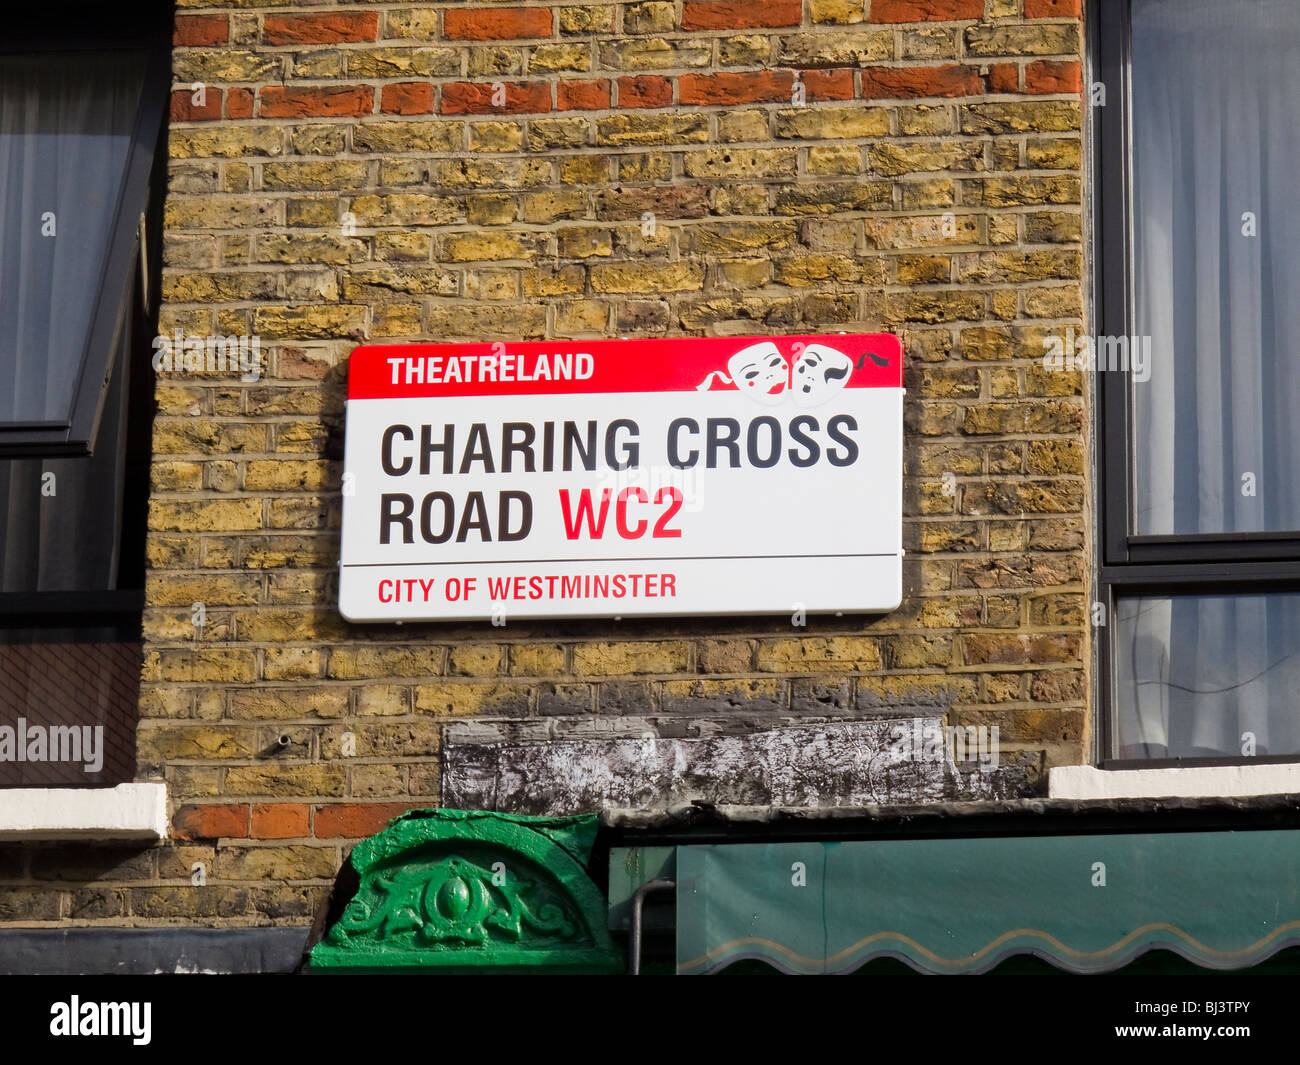 Charing Cross Road street sign City of Westminster Theatre land - Stock Image